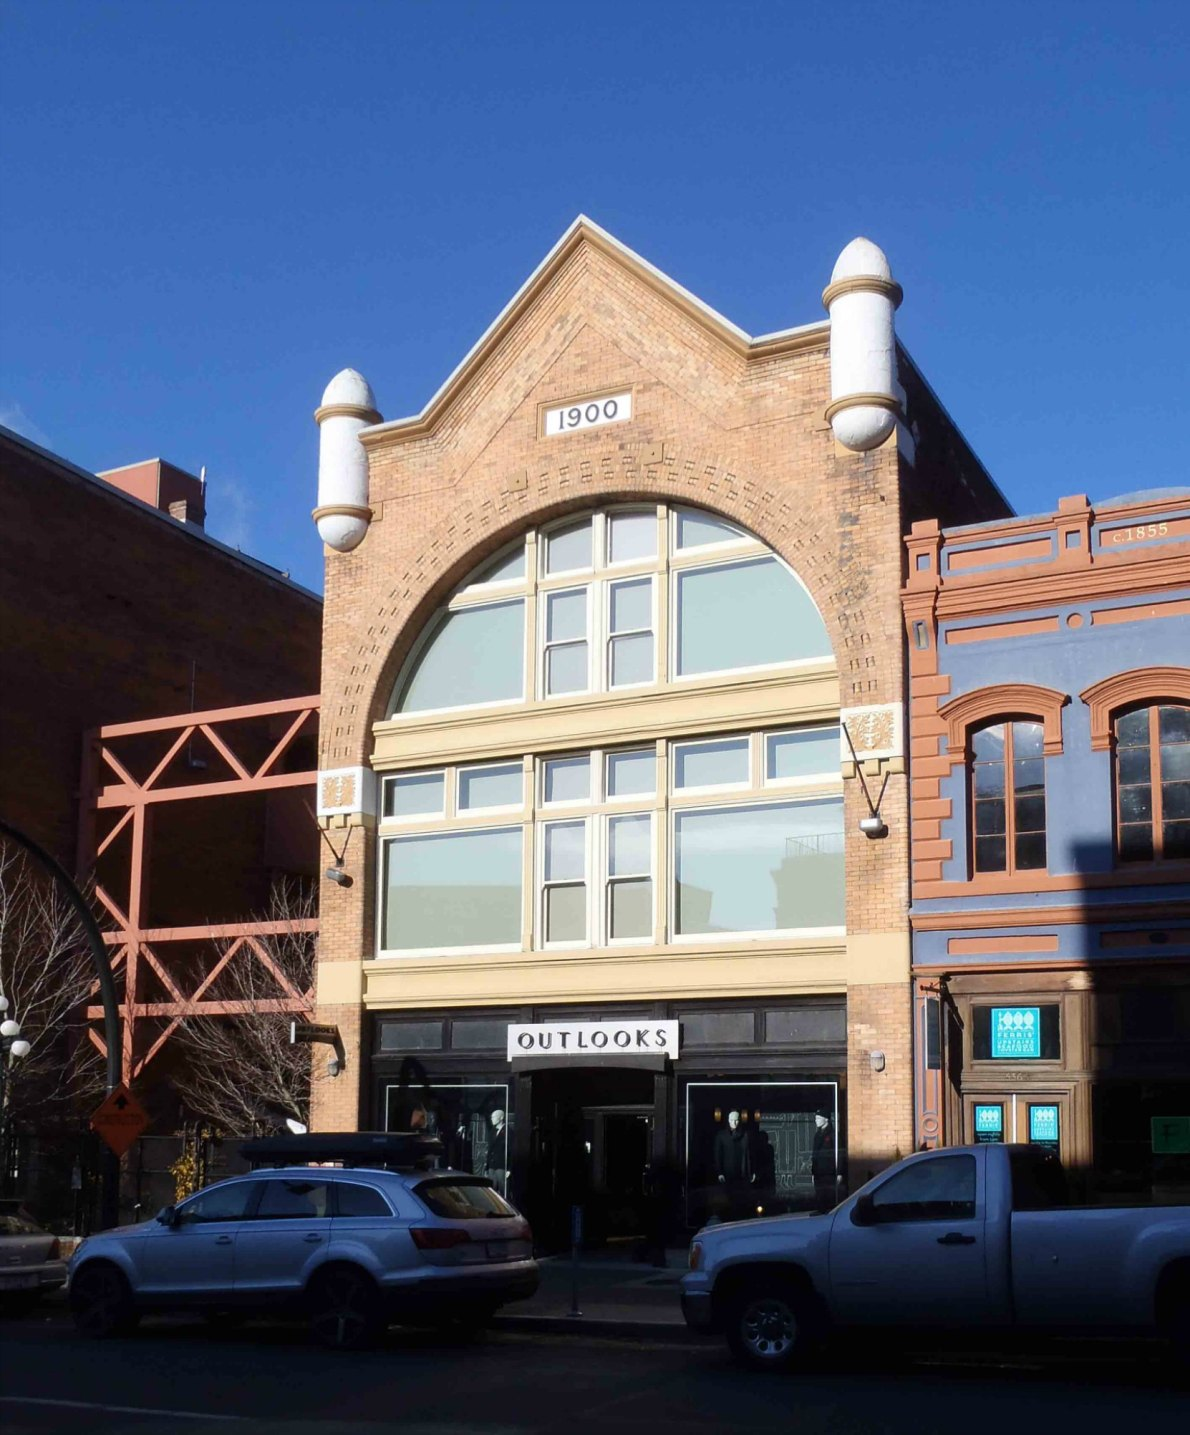 Earle Building. 530-534 Yates Street. Built in 1900 as a warehouse for Thomas Earle by architect Thomas Hooper.